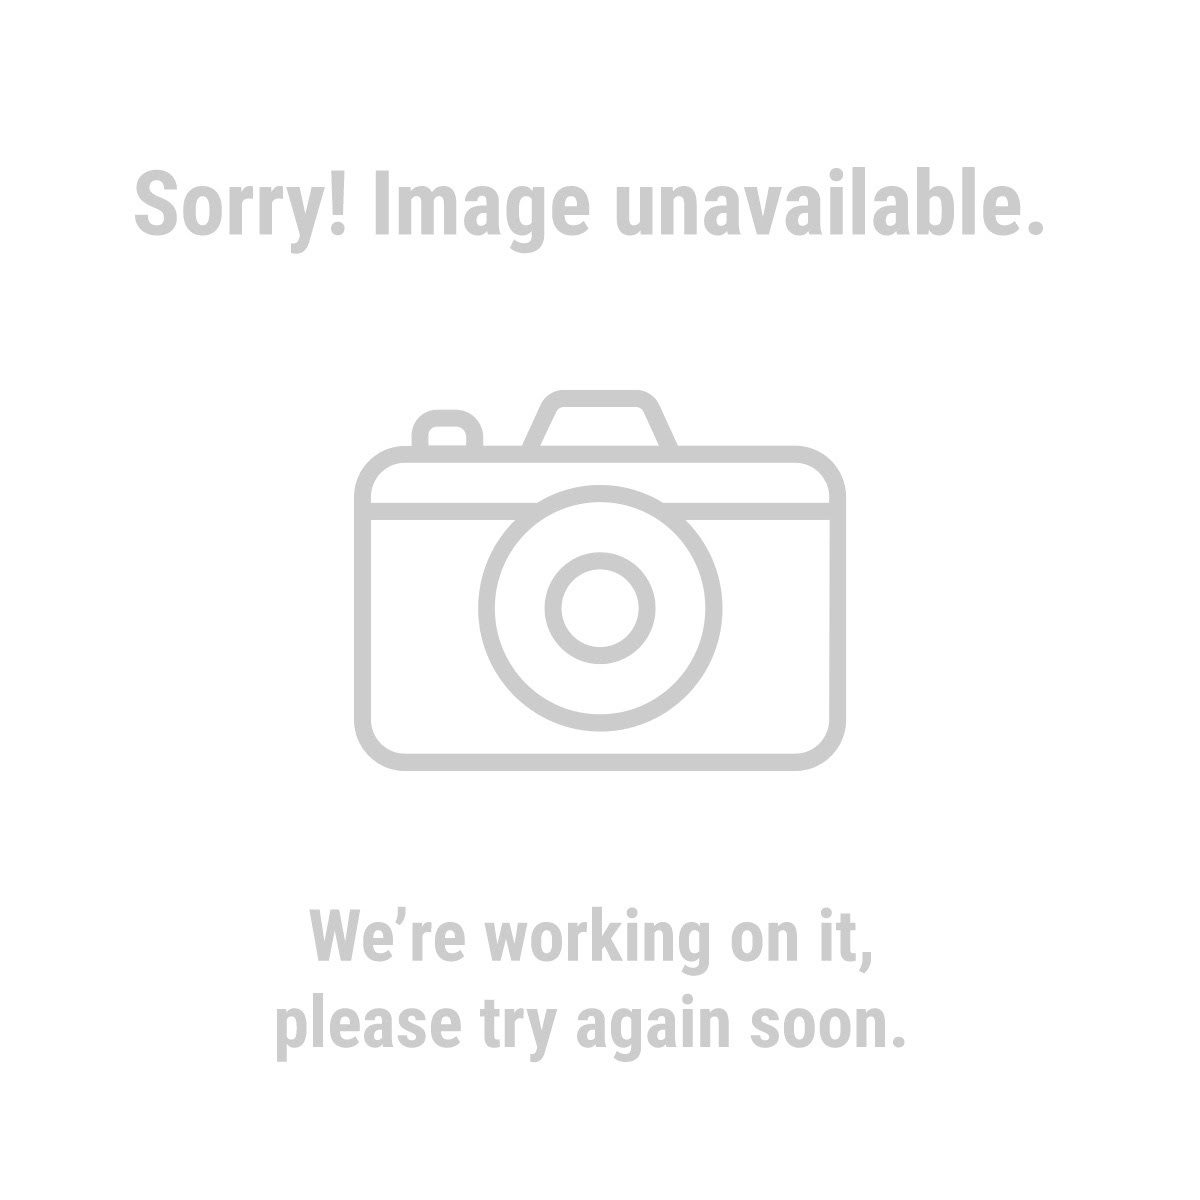 Brodeusse Bressane Blogspot Com Solar Lighting Indoors For